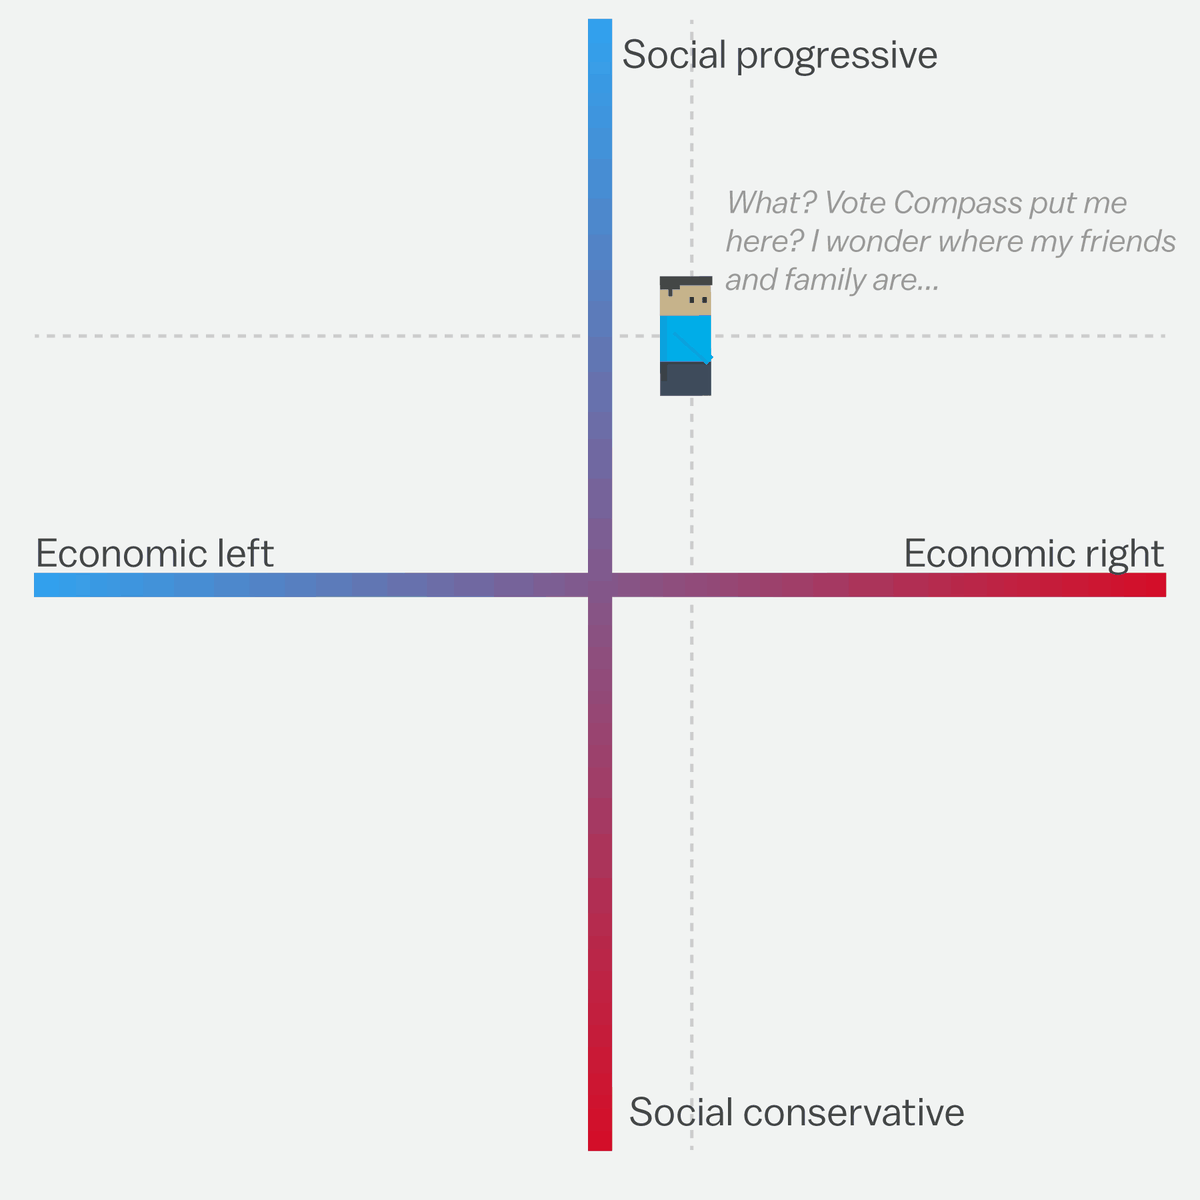 hight resolution of what is compelling about vote compass at least to me is that it takes this academic rigor and quantifies you and the candidates on these scales